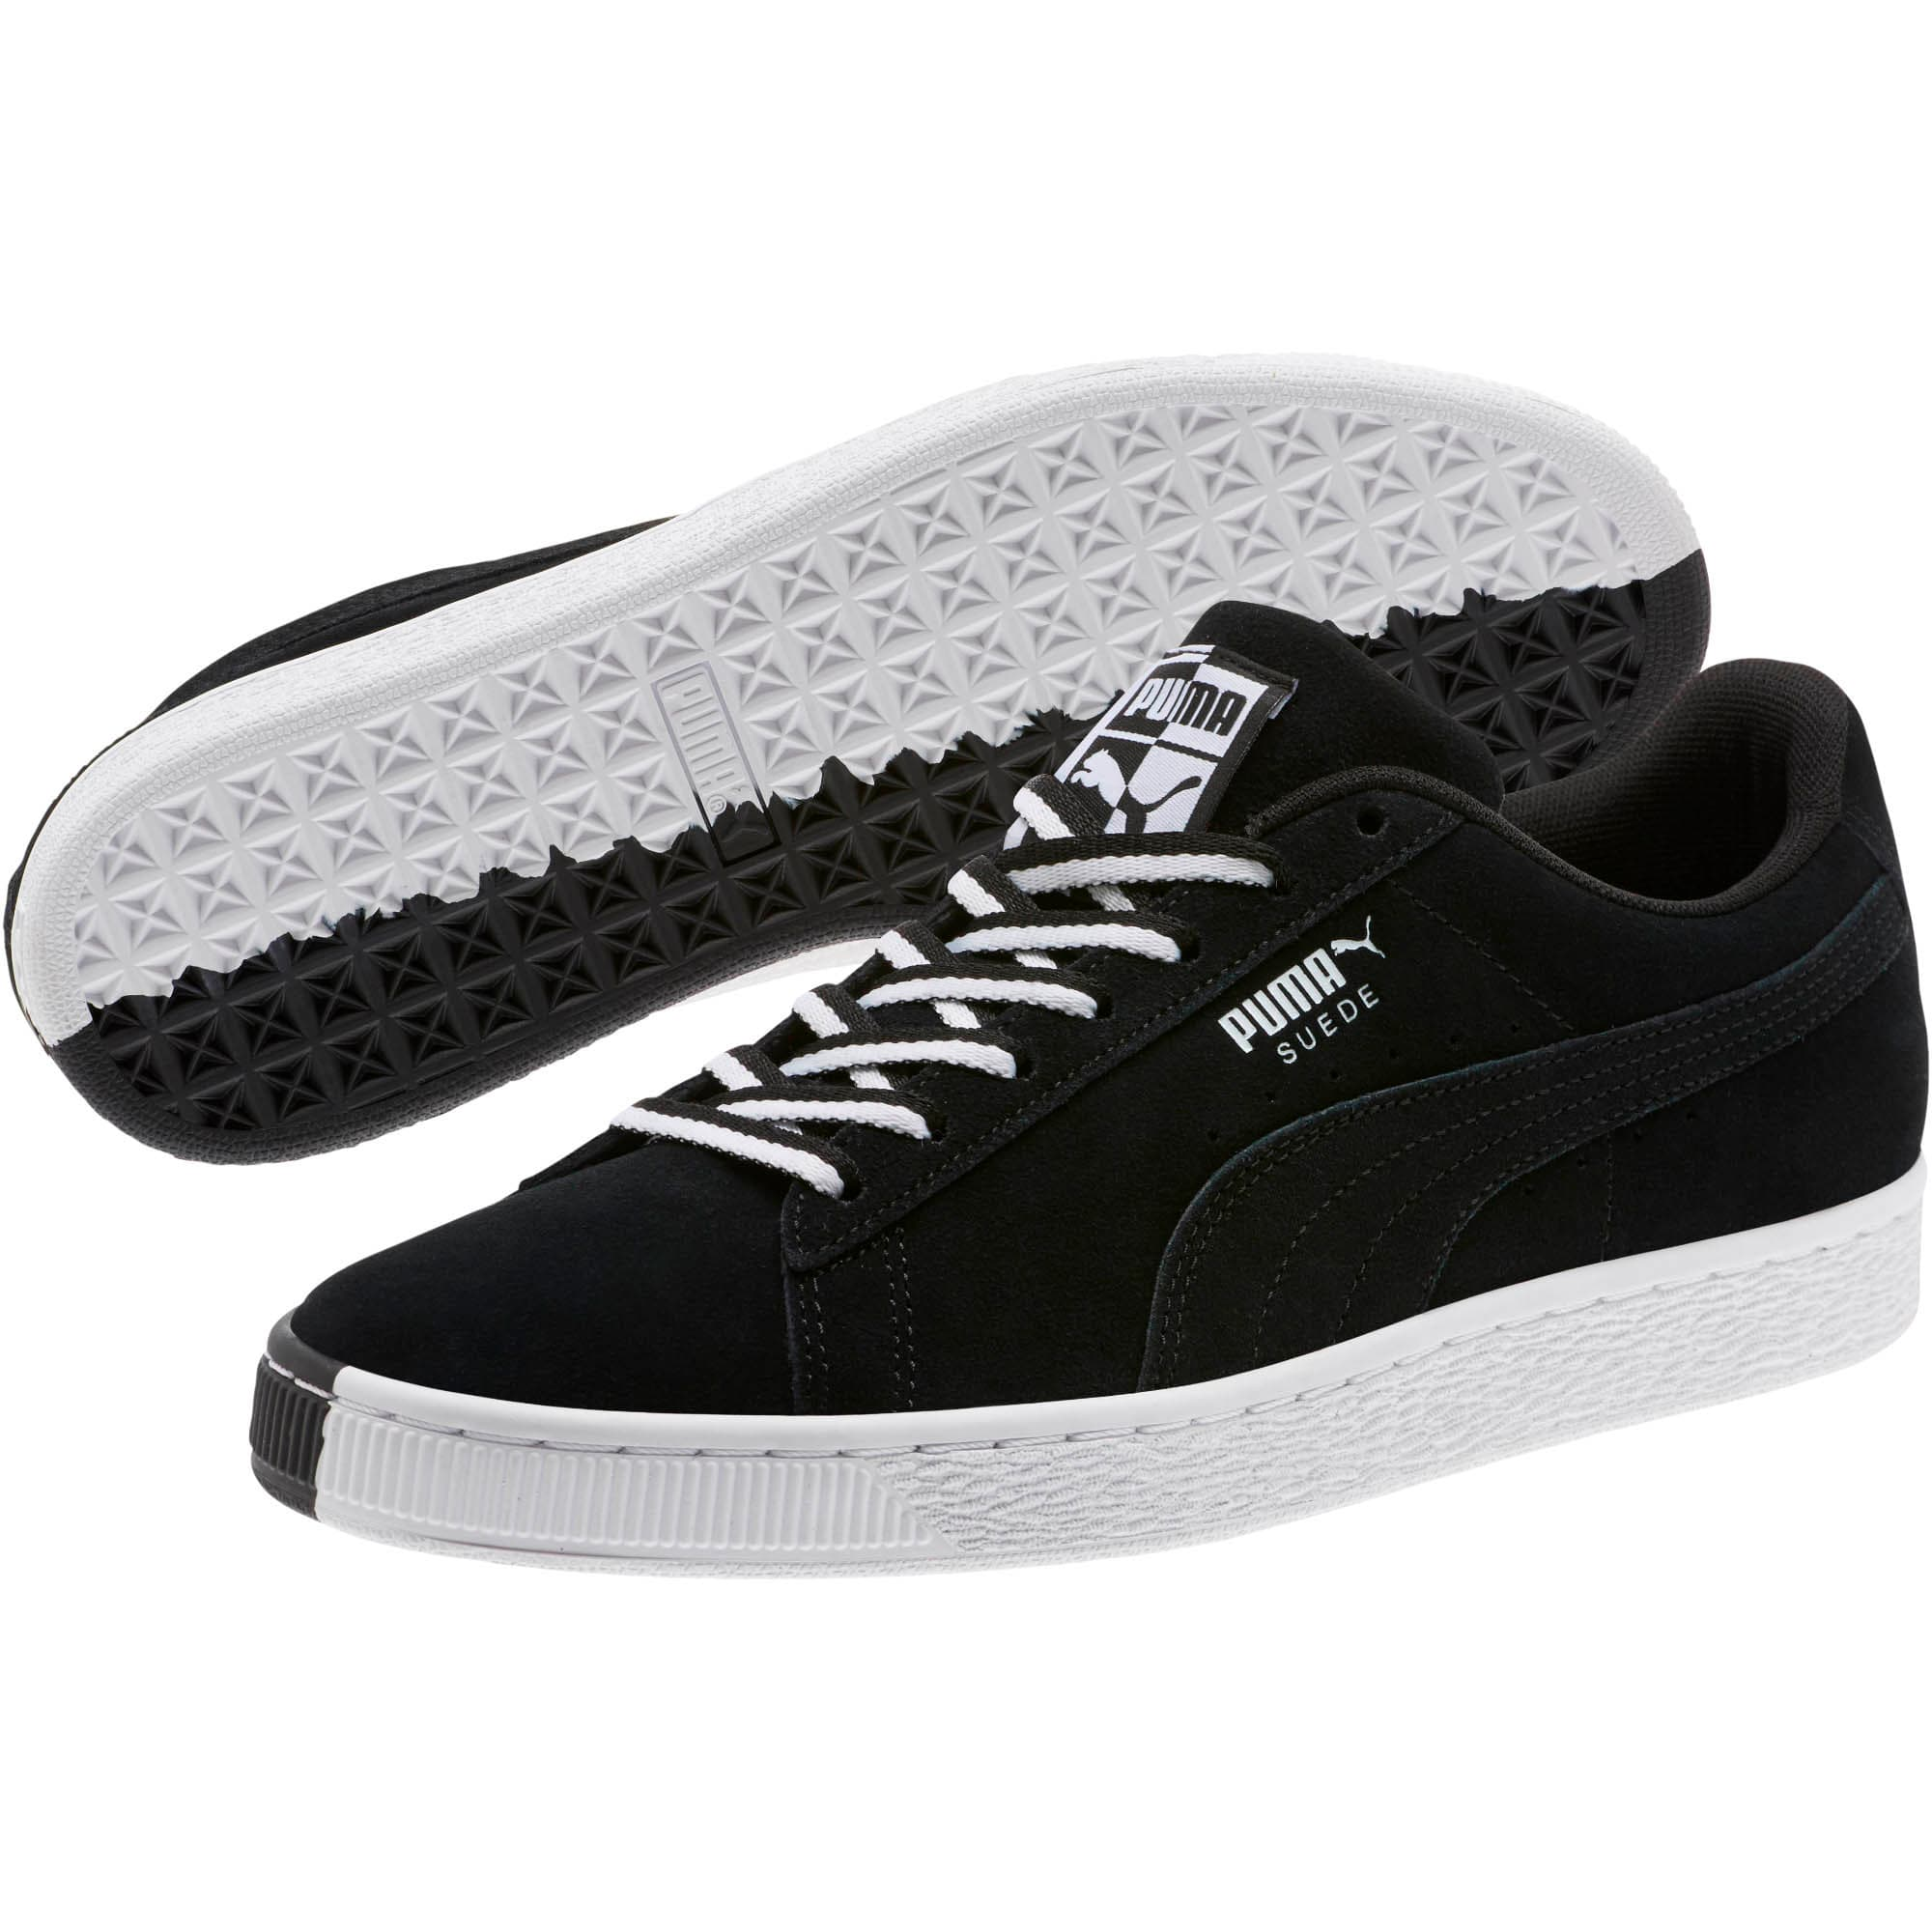 """Thumbnail 2 of Suede Classic """"Other Side"""" Sneakers, Puma Black-Puma White, medium"""